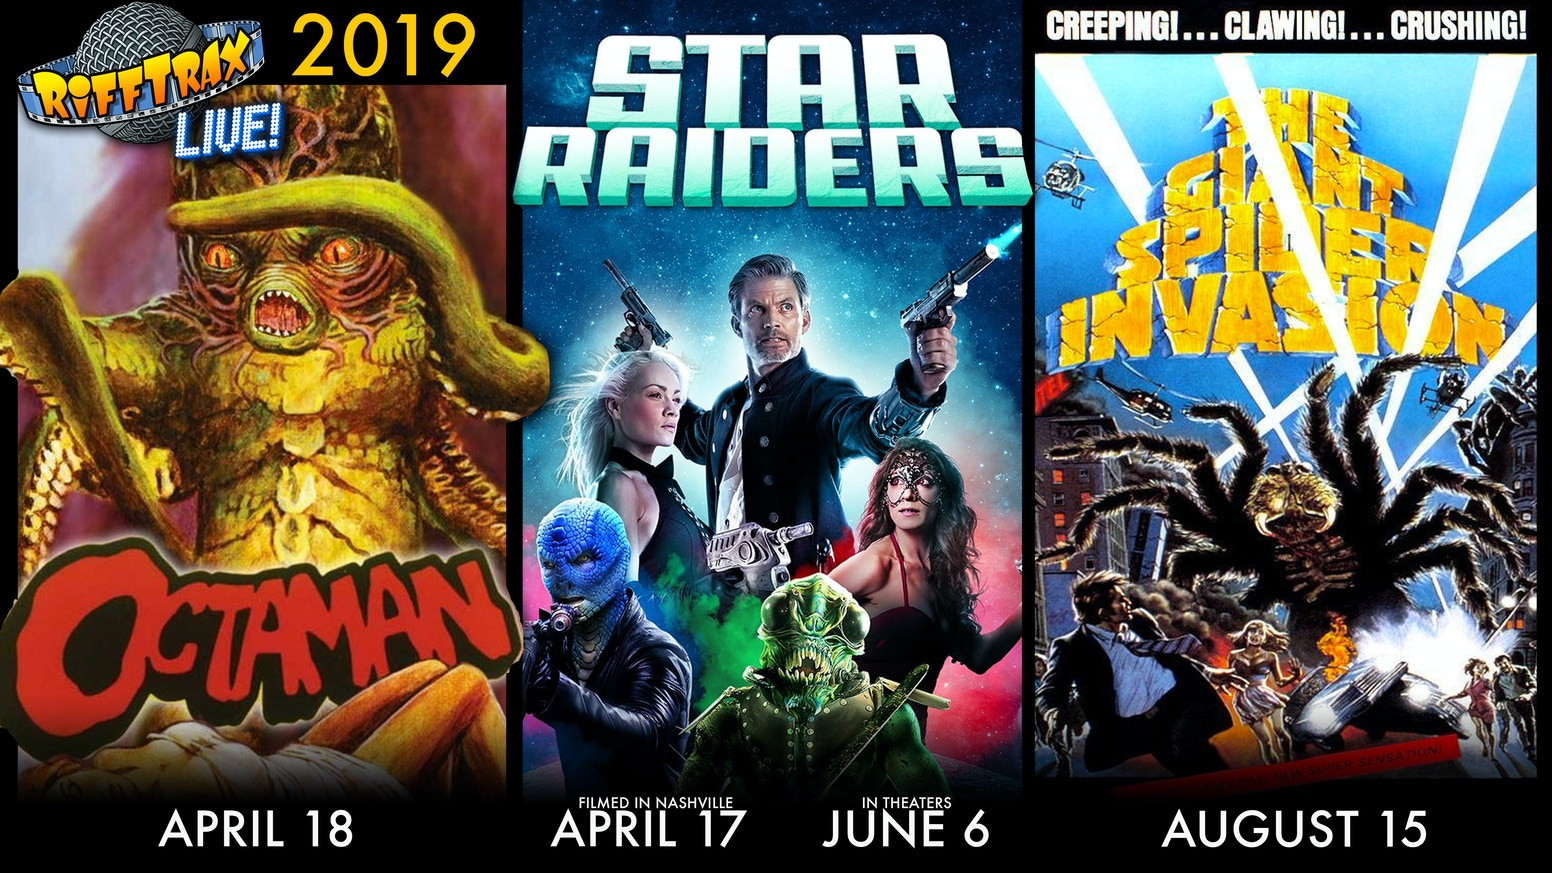 RiffTrax performed three Live Shows in 2019 simulcast to 700+ movie theaters nationwide: OCTAMAN, STAR RAIDERS & GIANT SPIDER INVASION!